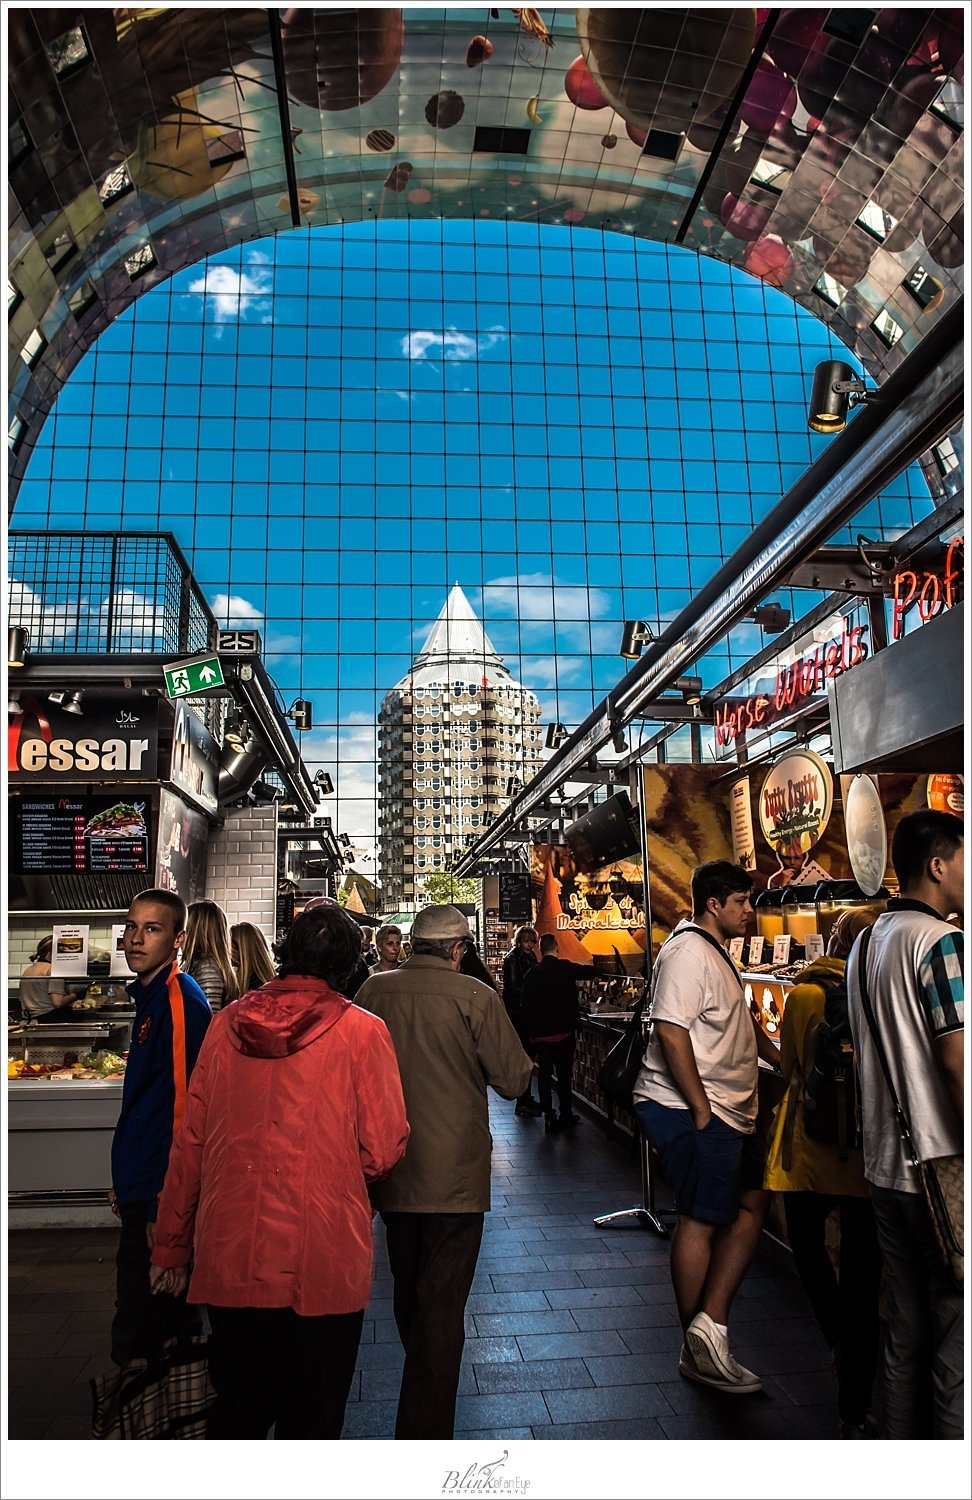 View from inside the Markthal in Rotterdam.